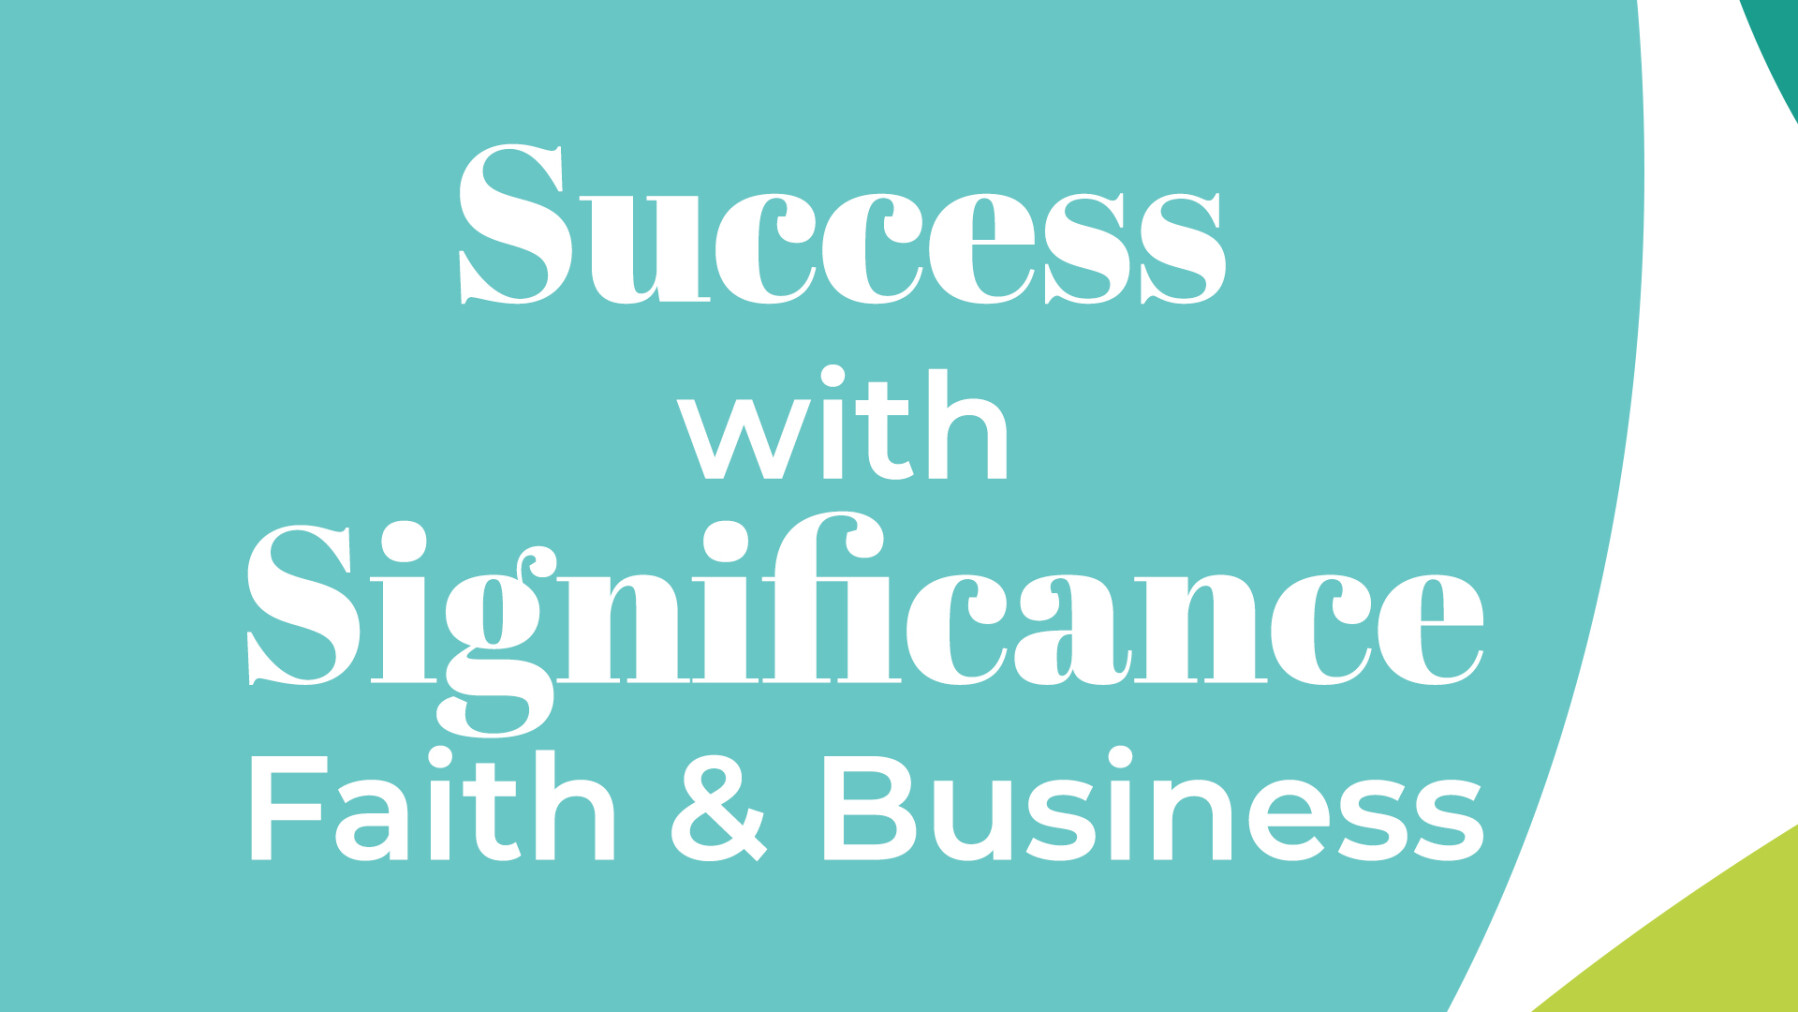 Success With Significance